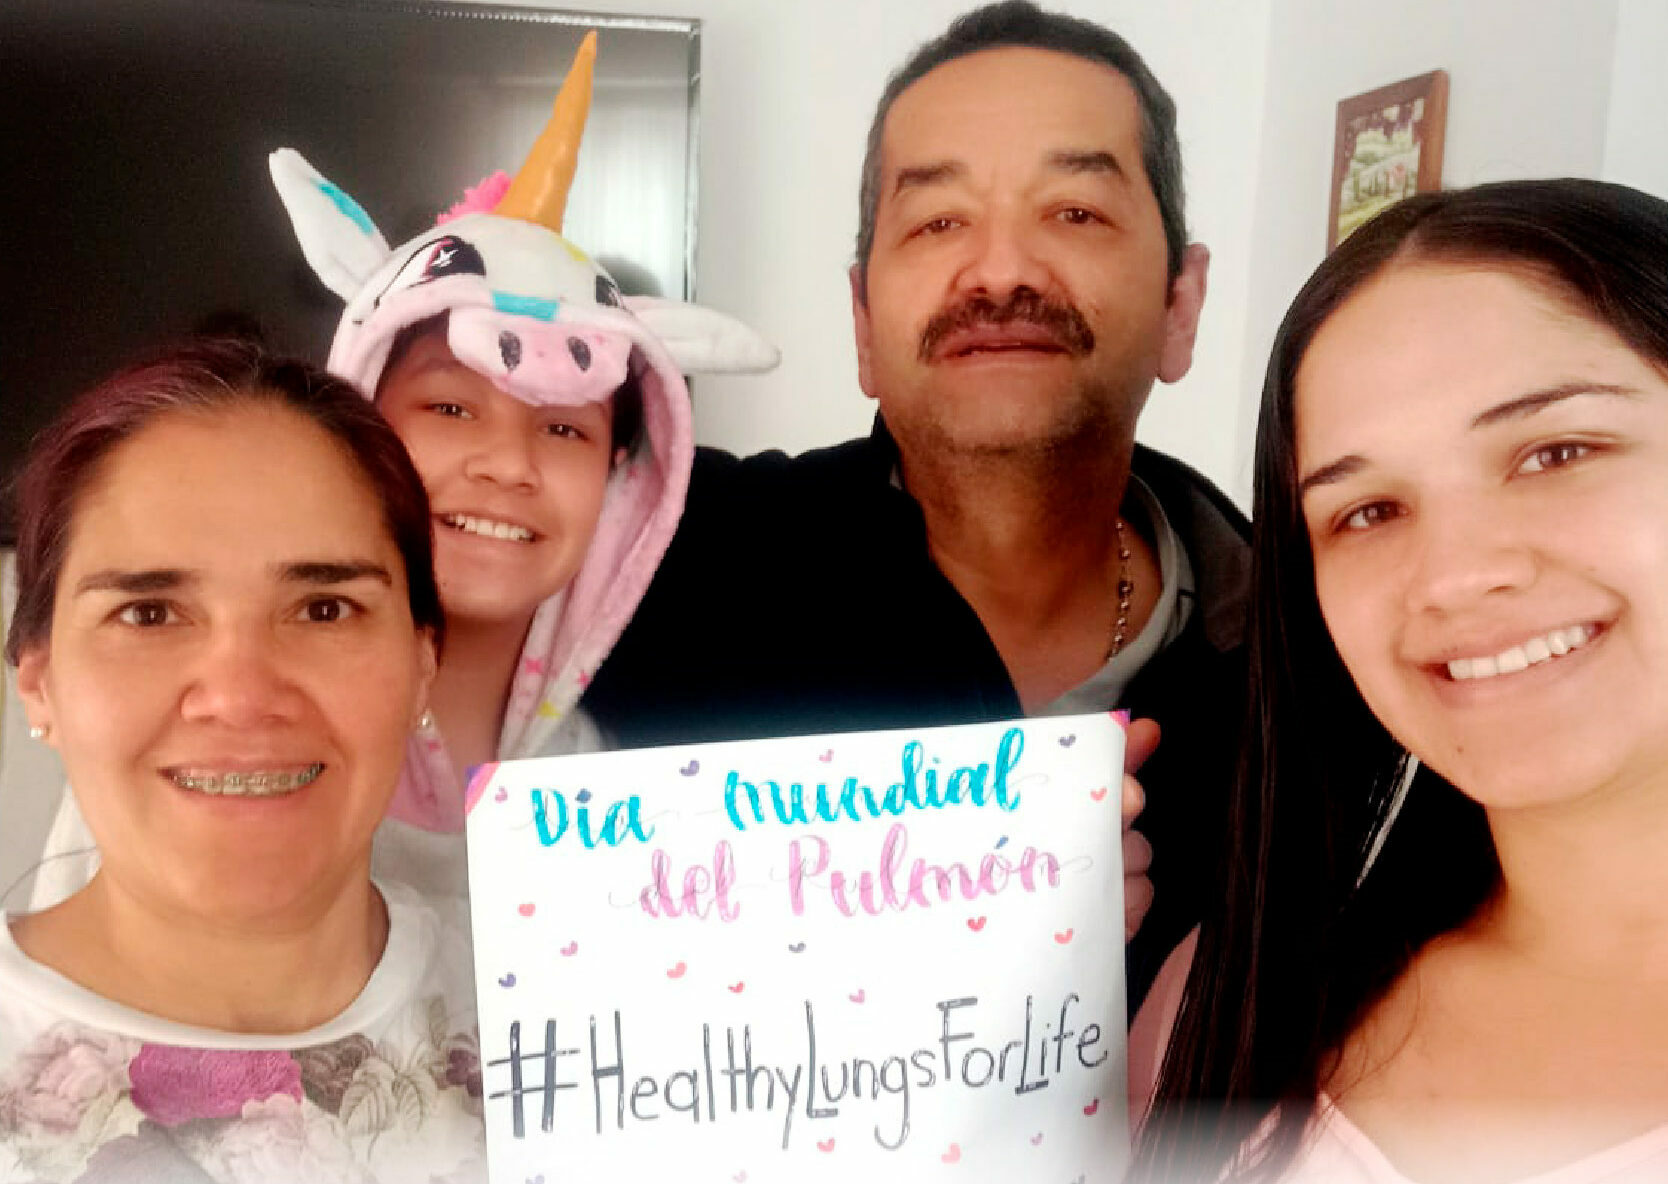 An online Zumba session was held by healthcare professionals in Colombia to help raise awareness of the importance of physical activity for healthy lungs. - Preview Image